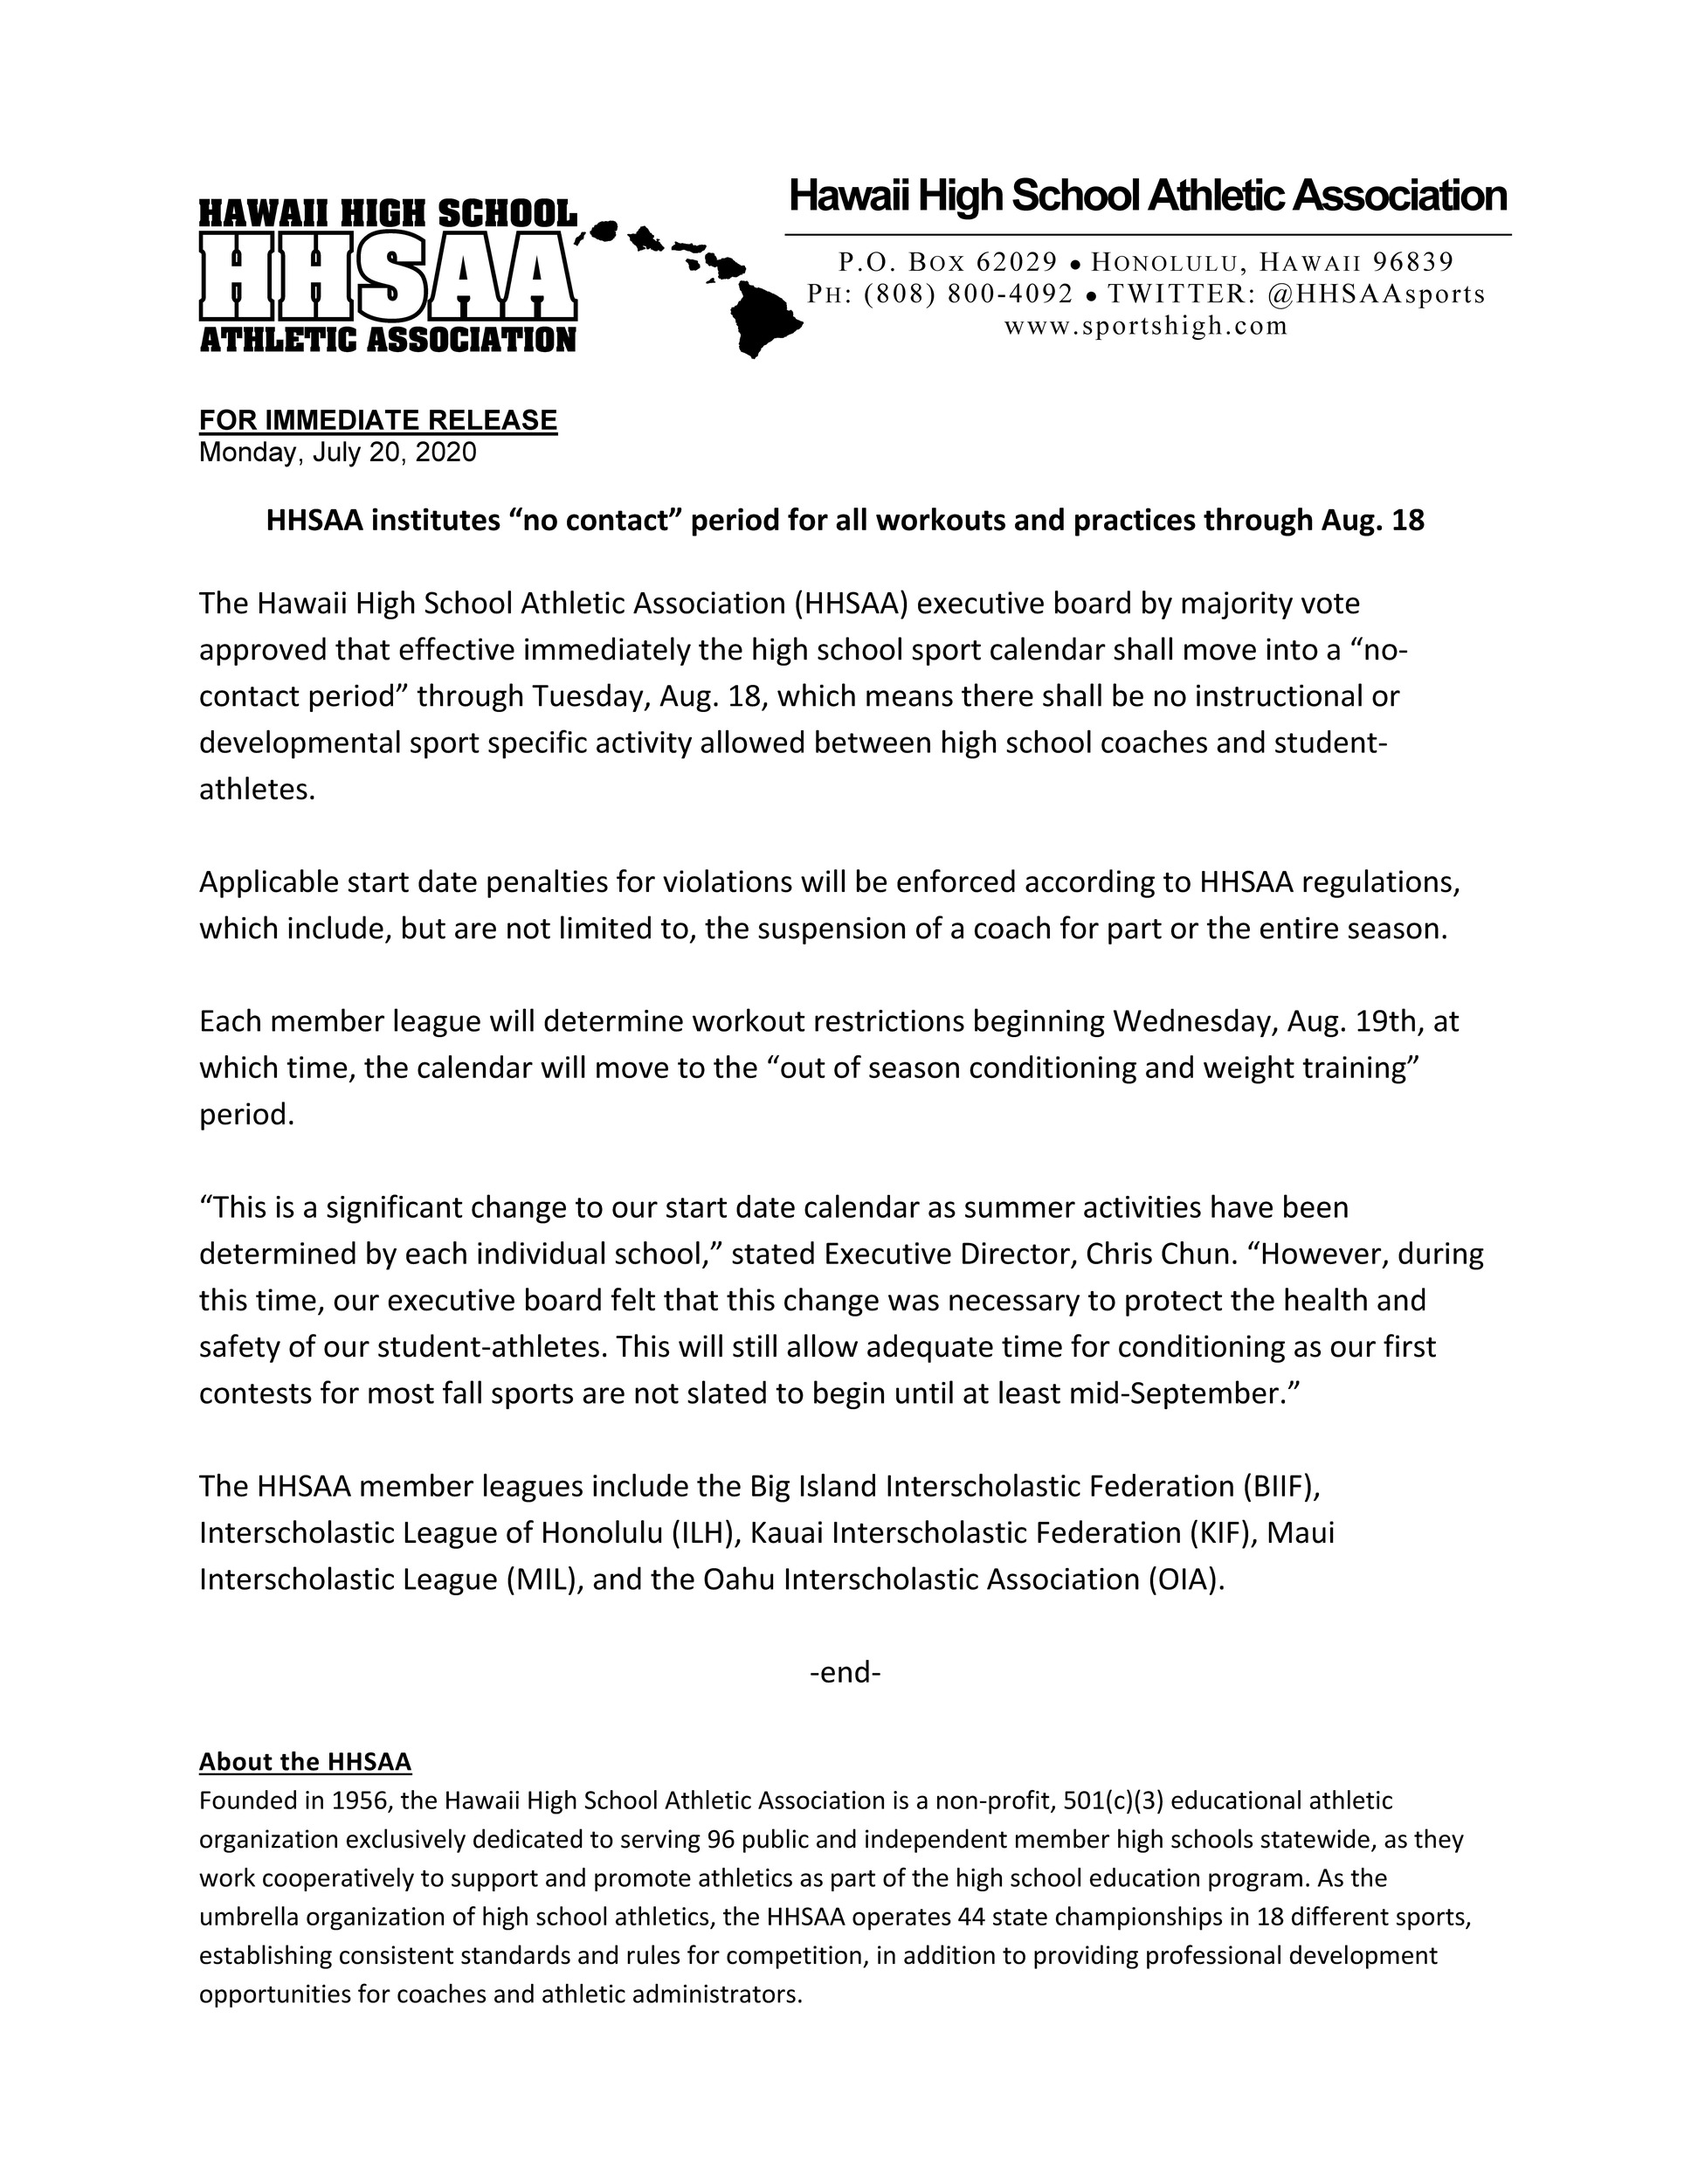 2020-07-20-press-release-hhsaa-institutes-no-contact-dead-period